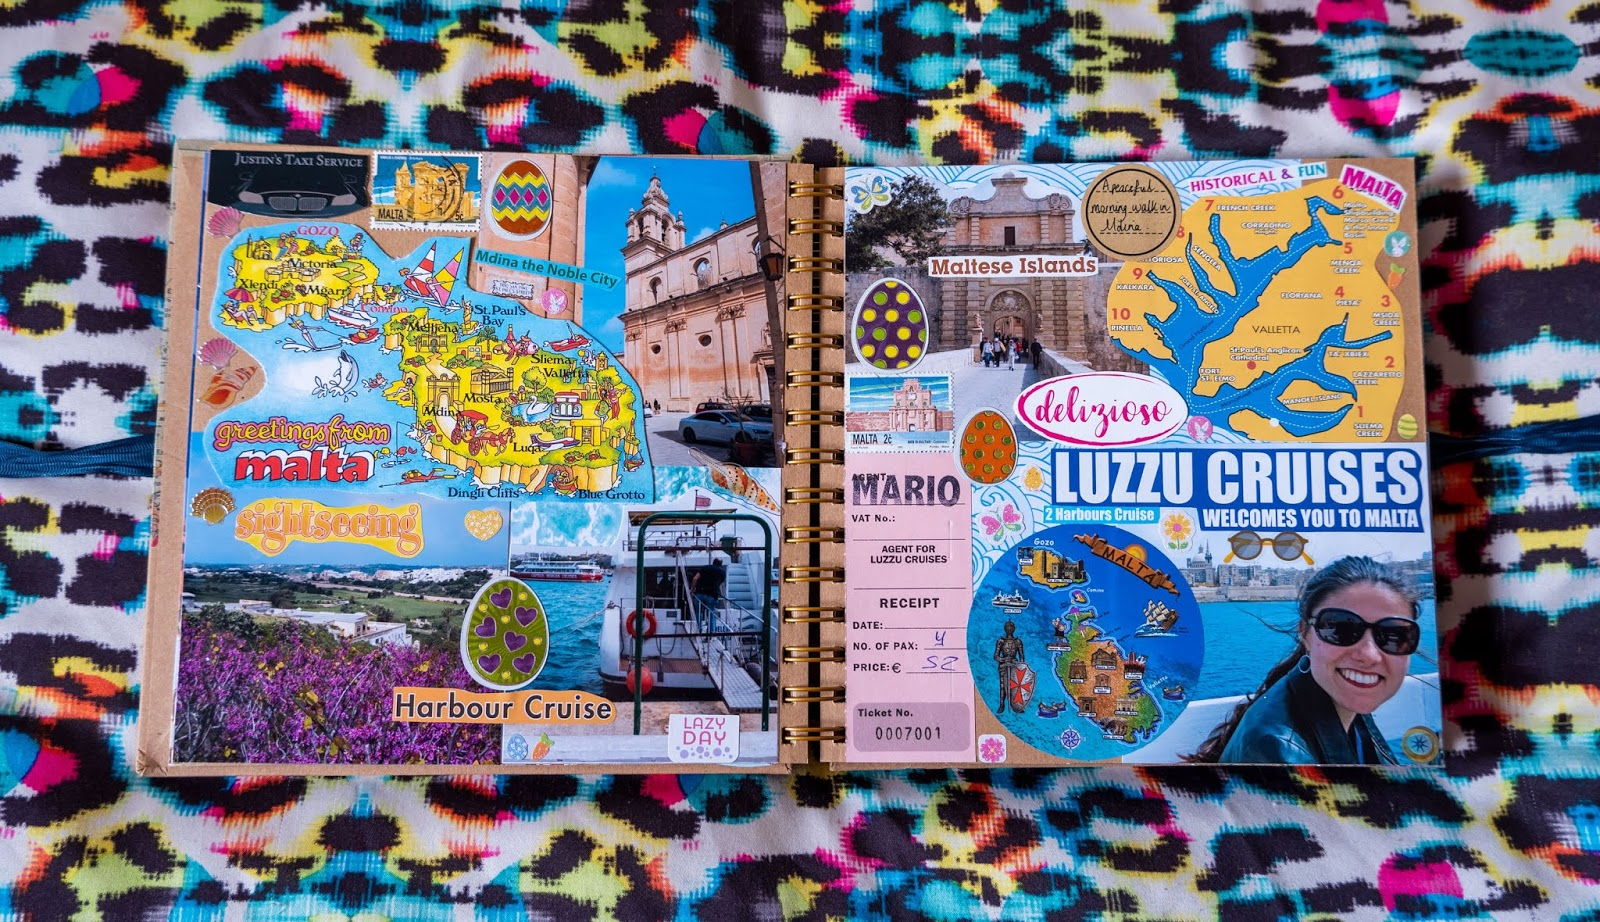 Malta pages in my 2019 travel scrapbooks